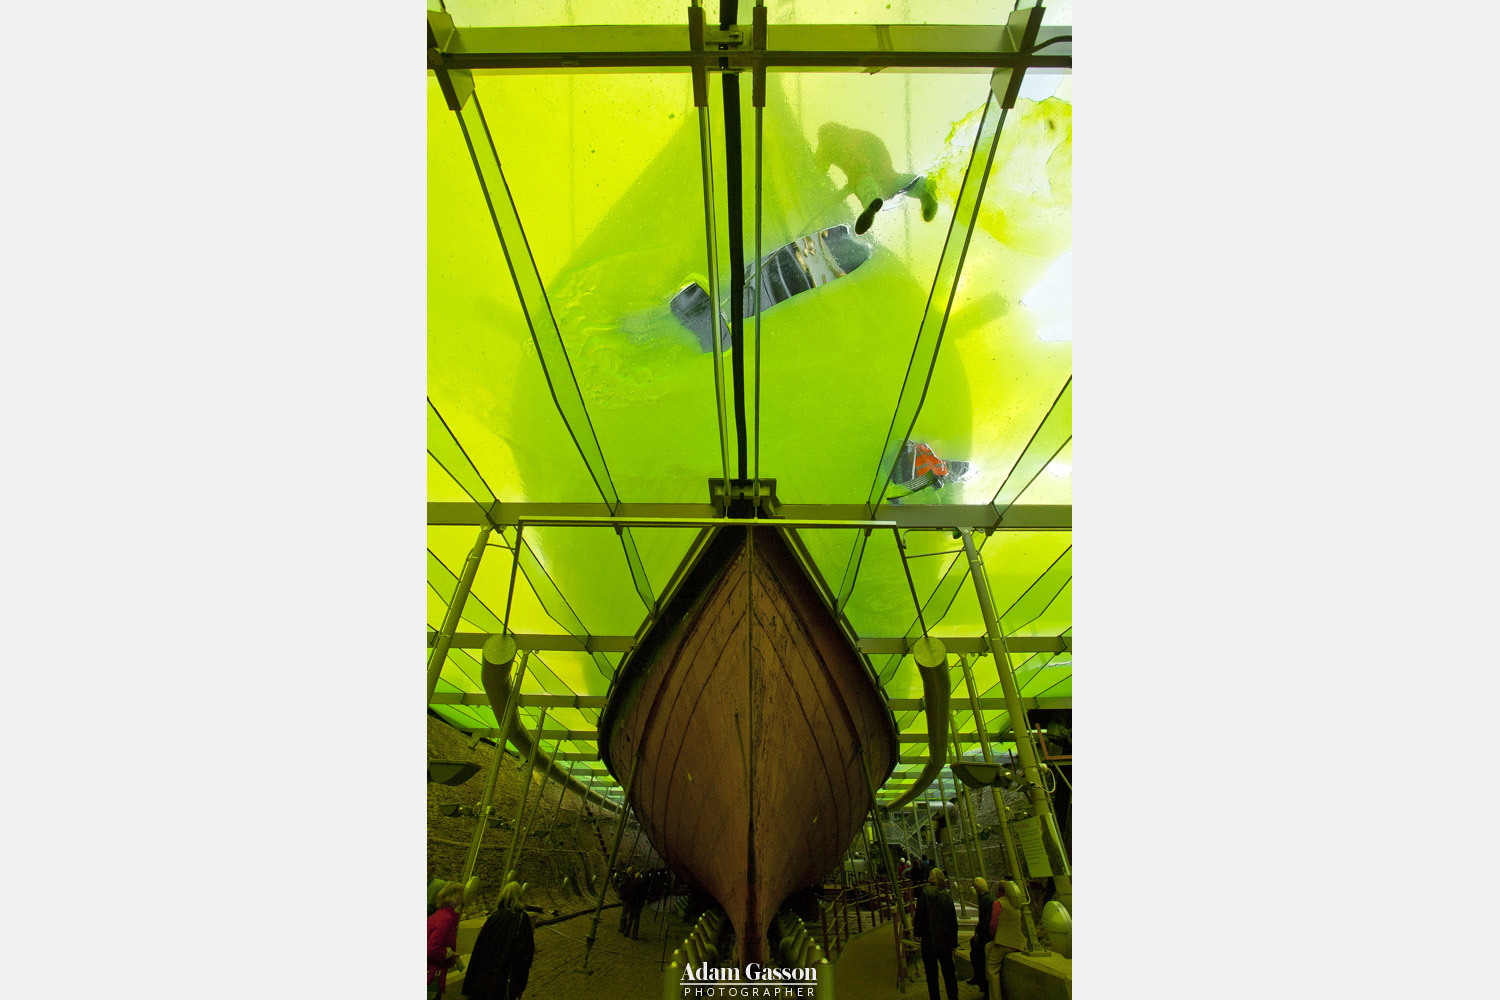 ss Great Britain Jelly Art photos